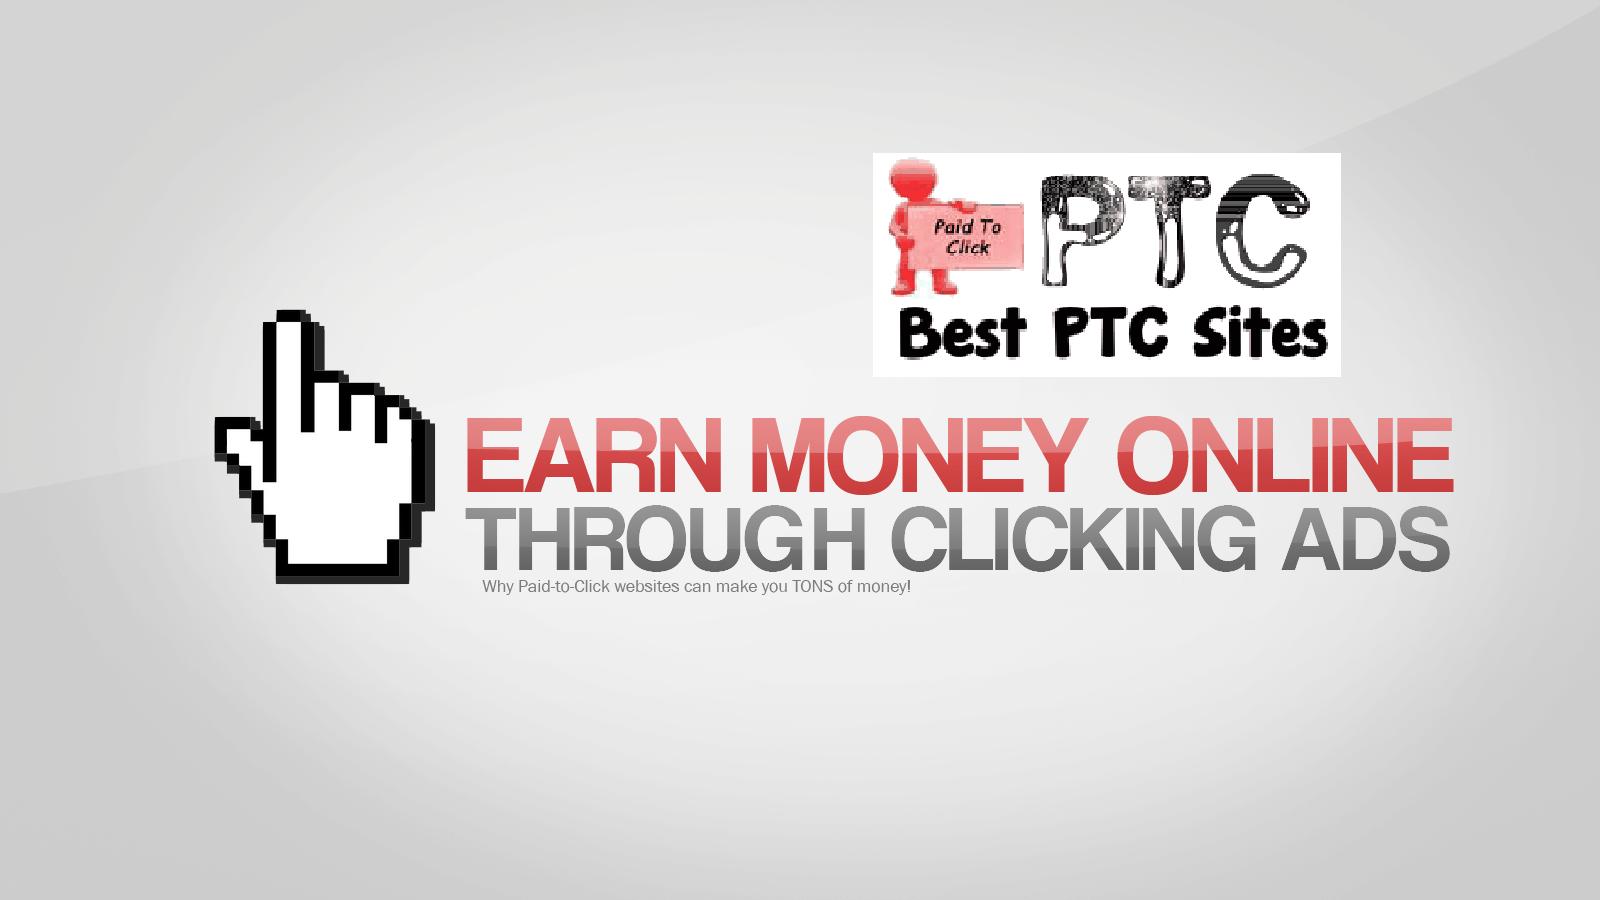 earn money with PTC sites